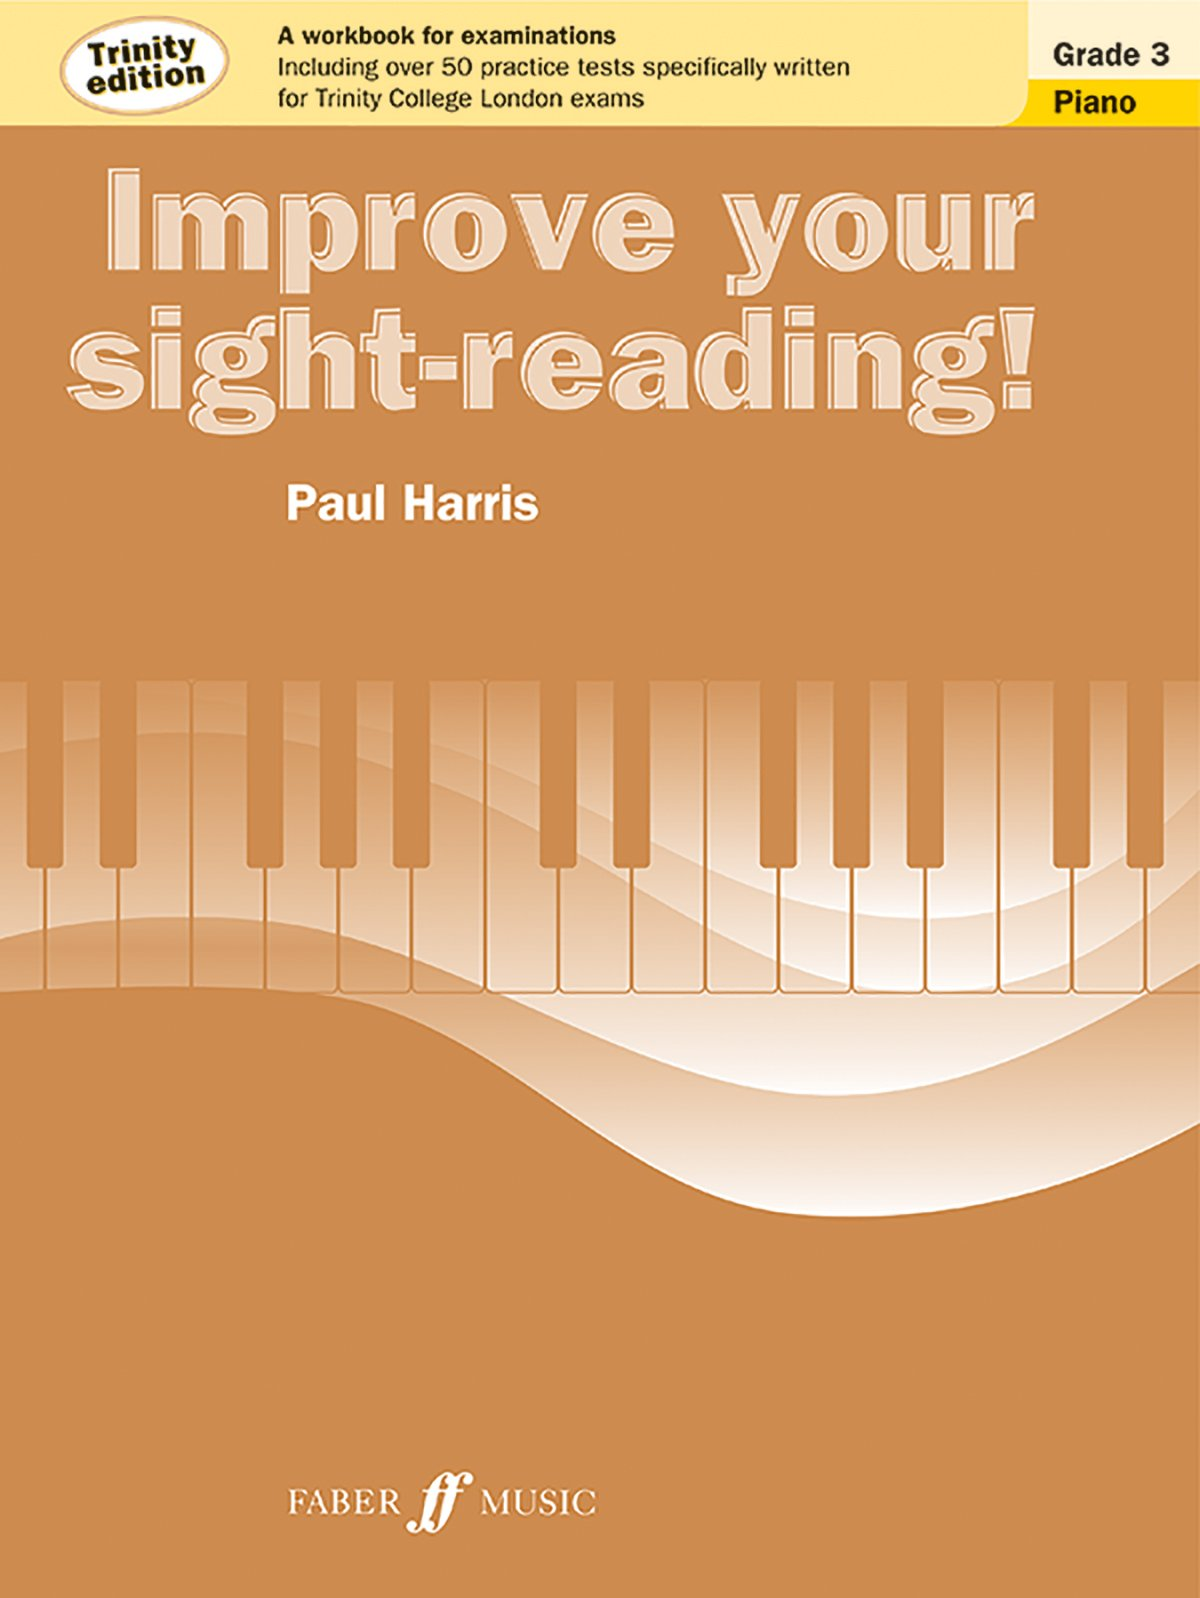 Improve Your Sight-reading! Trinity Piano, Grade 3: A Workbook for Examinations (Faber Edition: Improve Your Sight-Reading) ebook